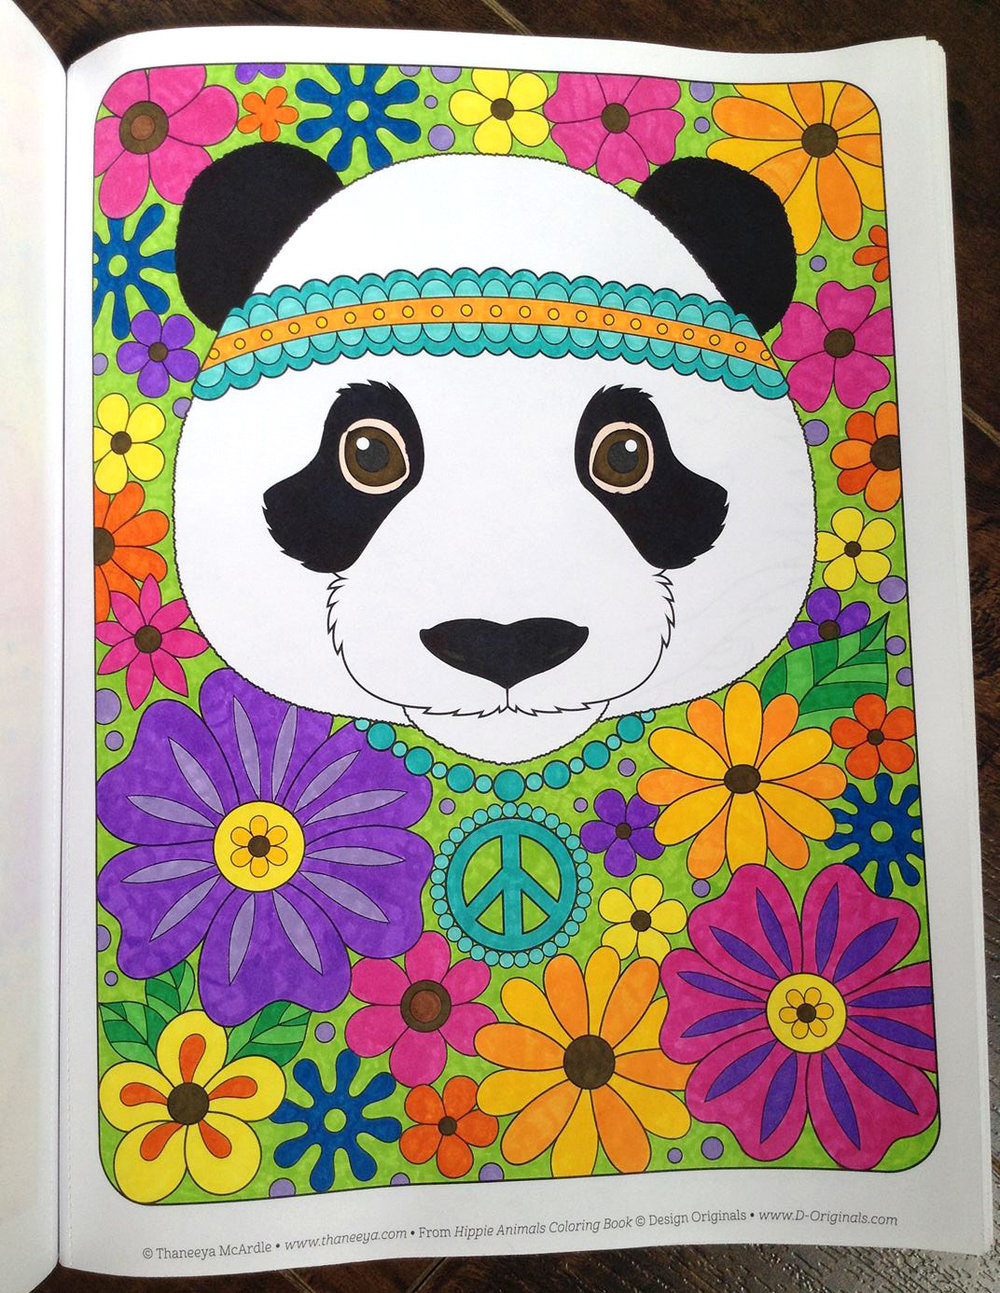 Panda Coloring Page By Thaneeya McArdle Colored